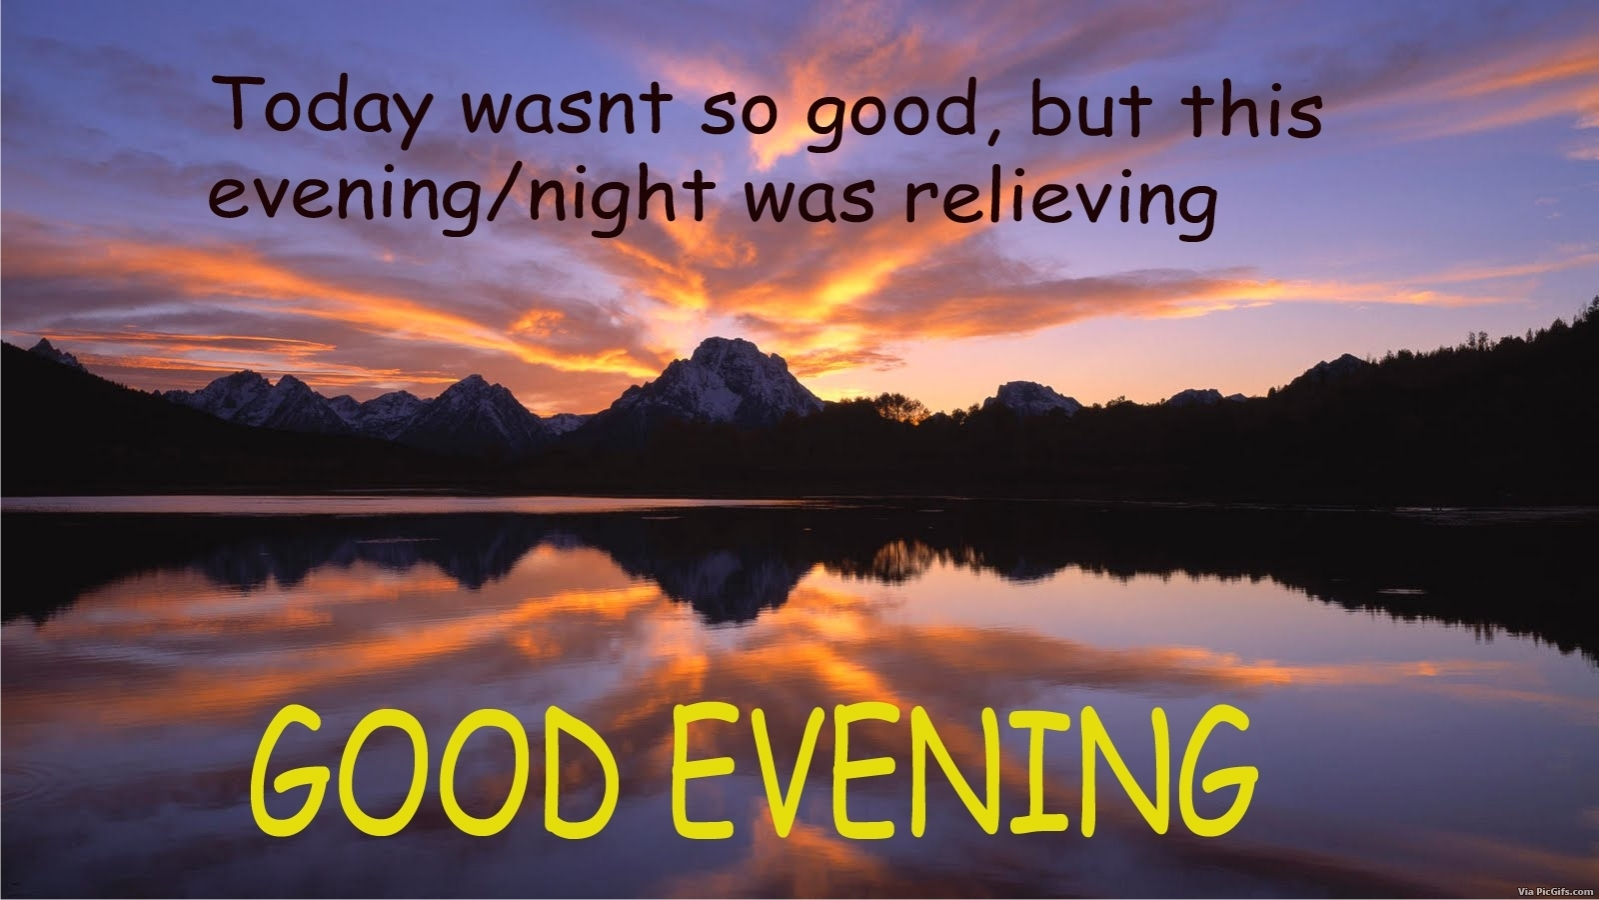 Good evening Facebook graphics